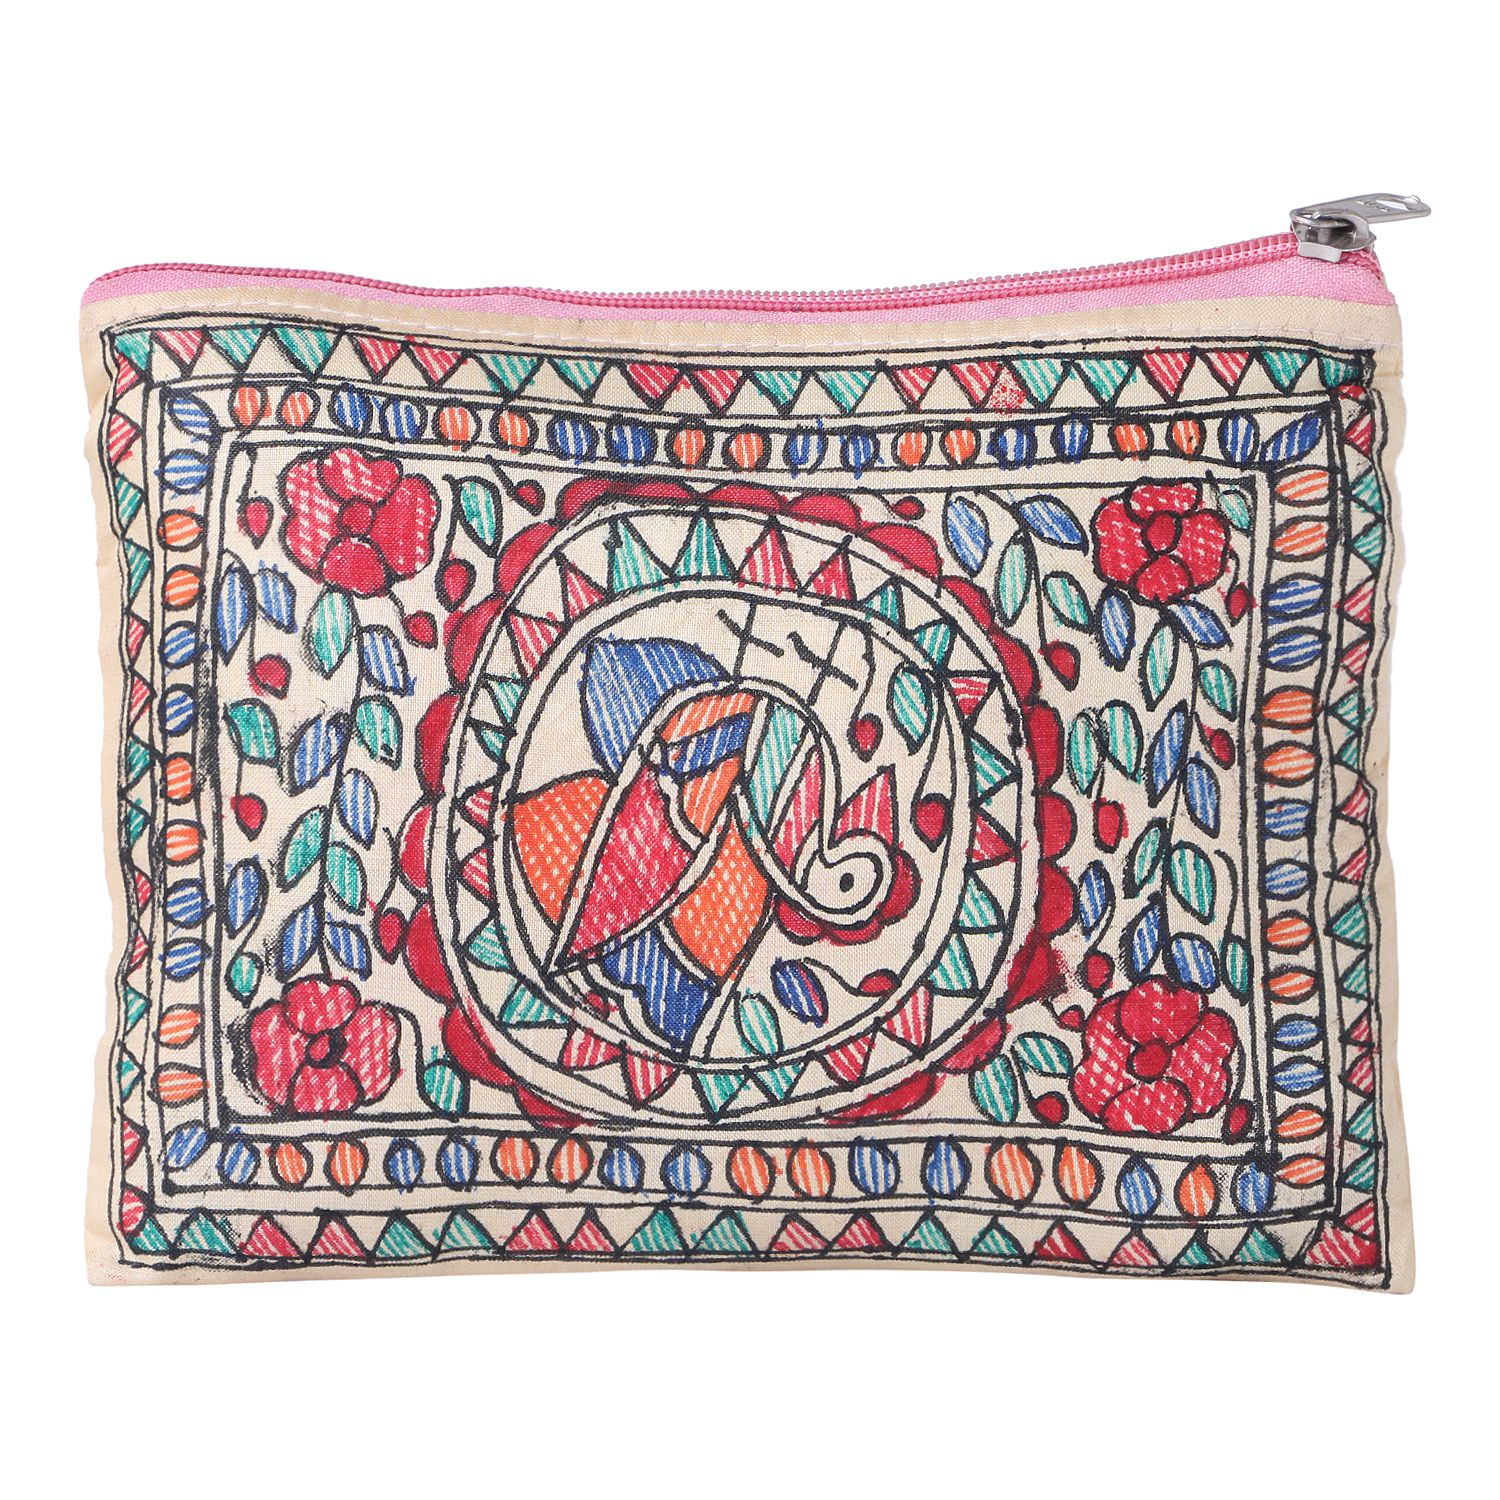 imithila Fabric Beige Pouch